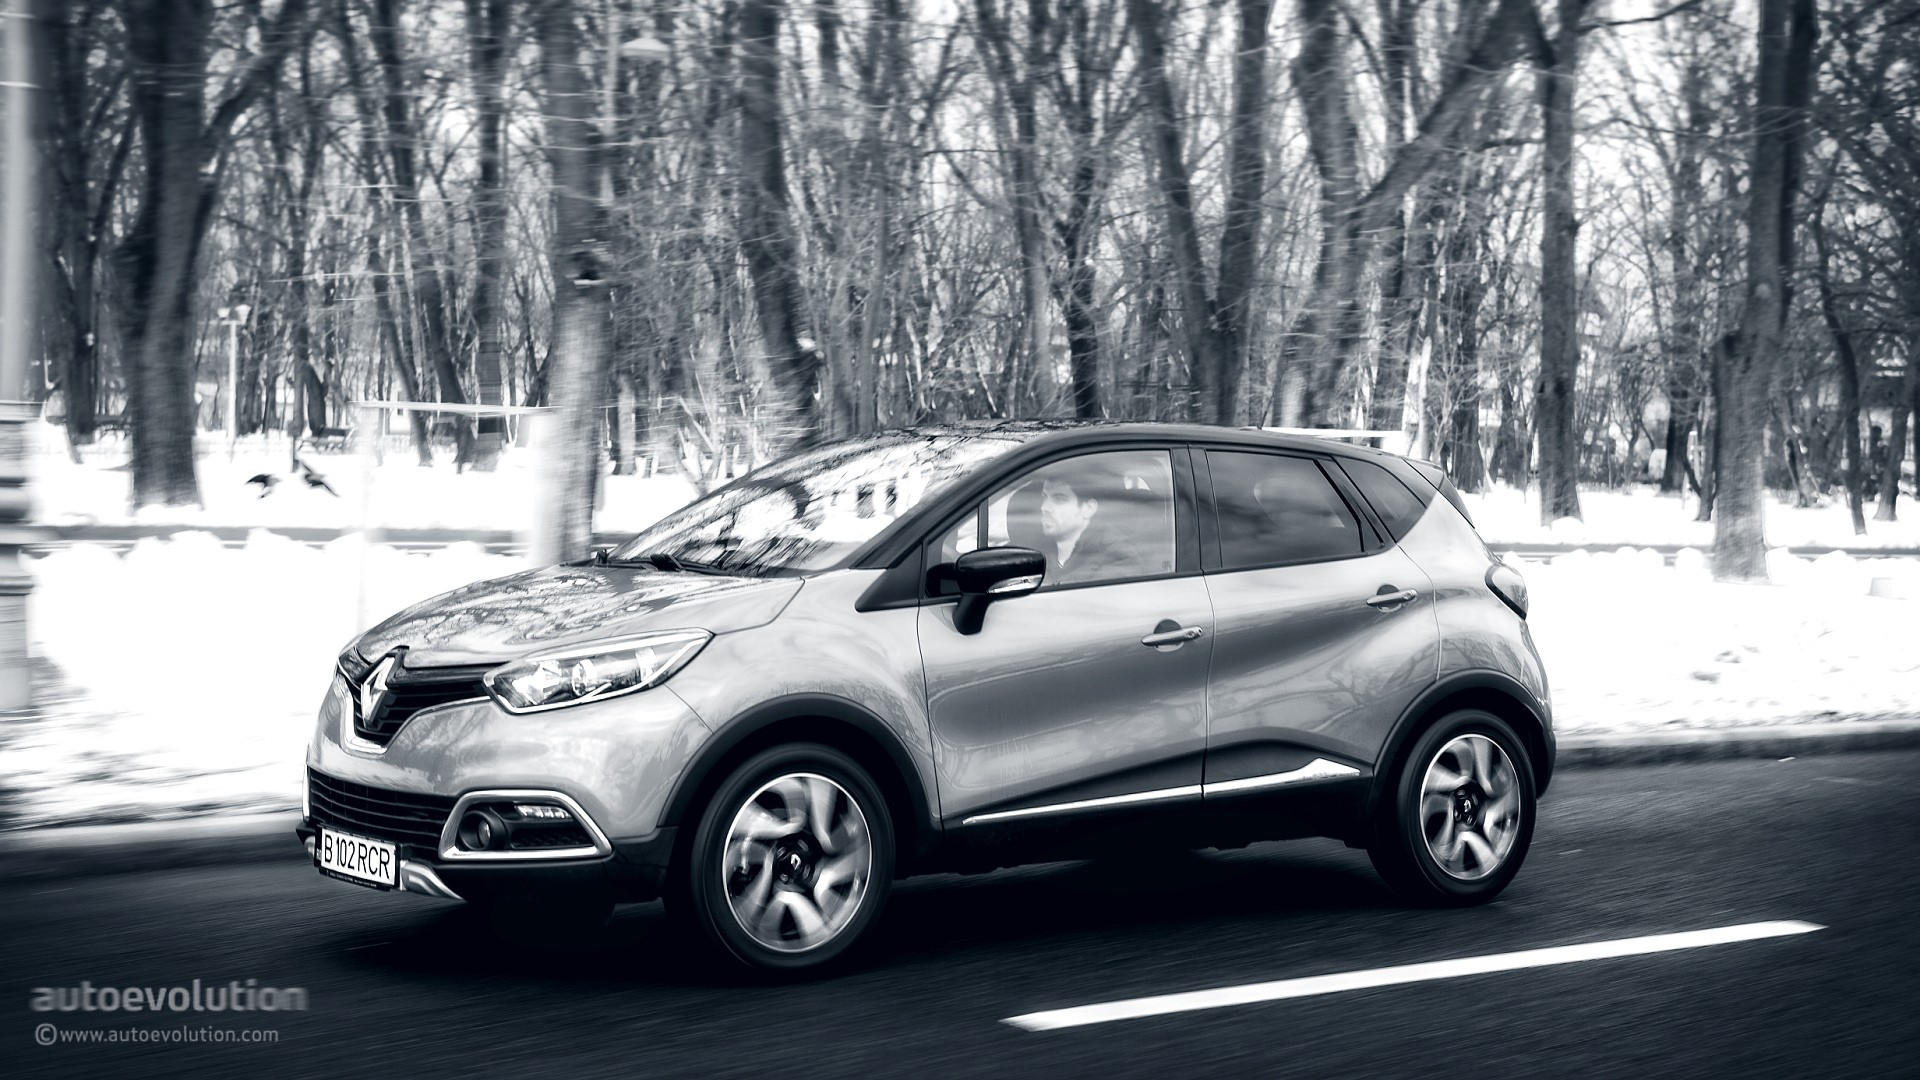 2015 renault captur tested why small crossovers are so popular autoevolution. Black Bedroom Furniture Sets. Home Design Ideas